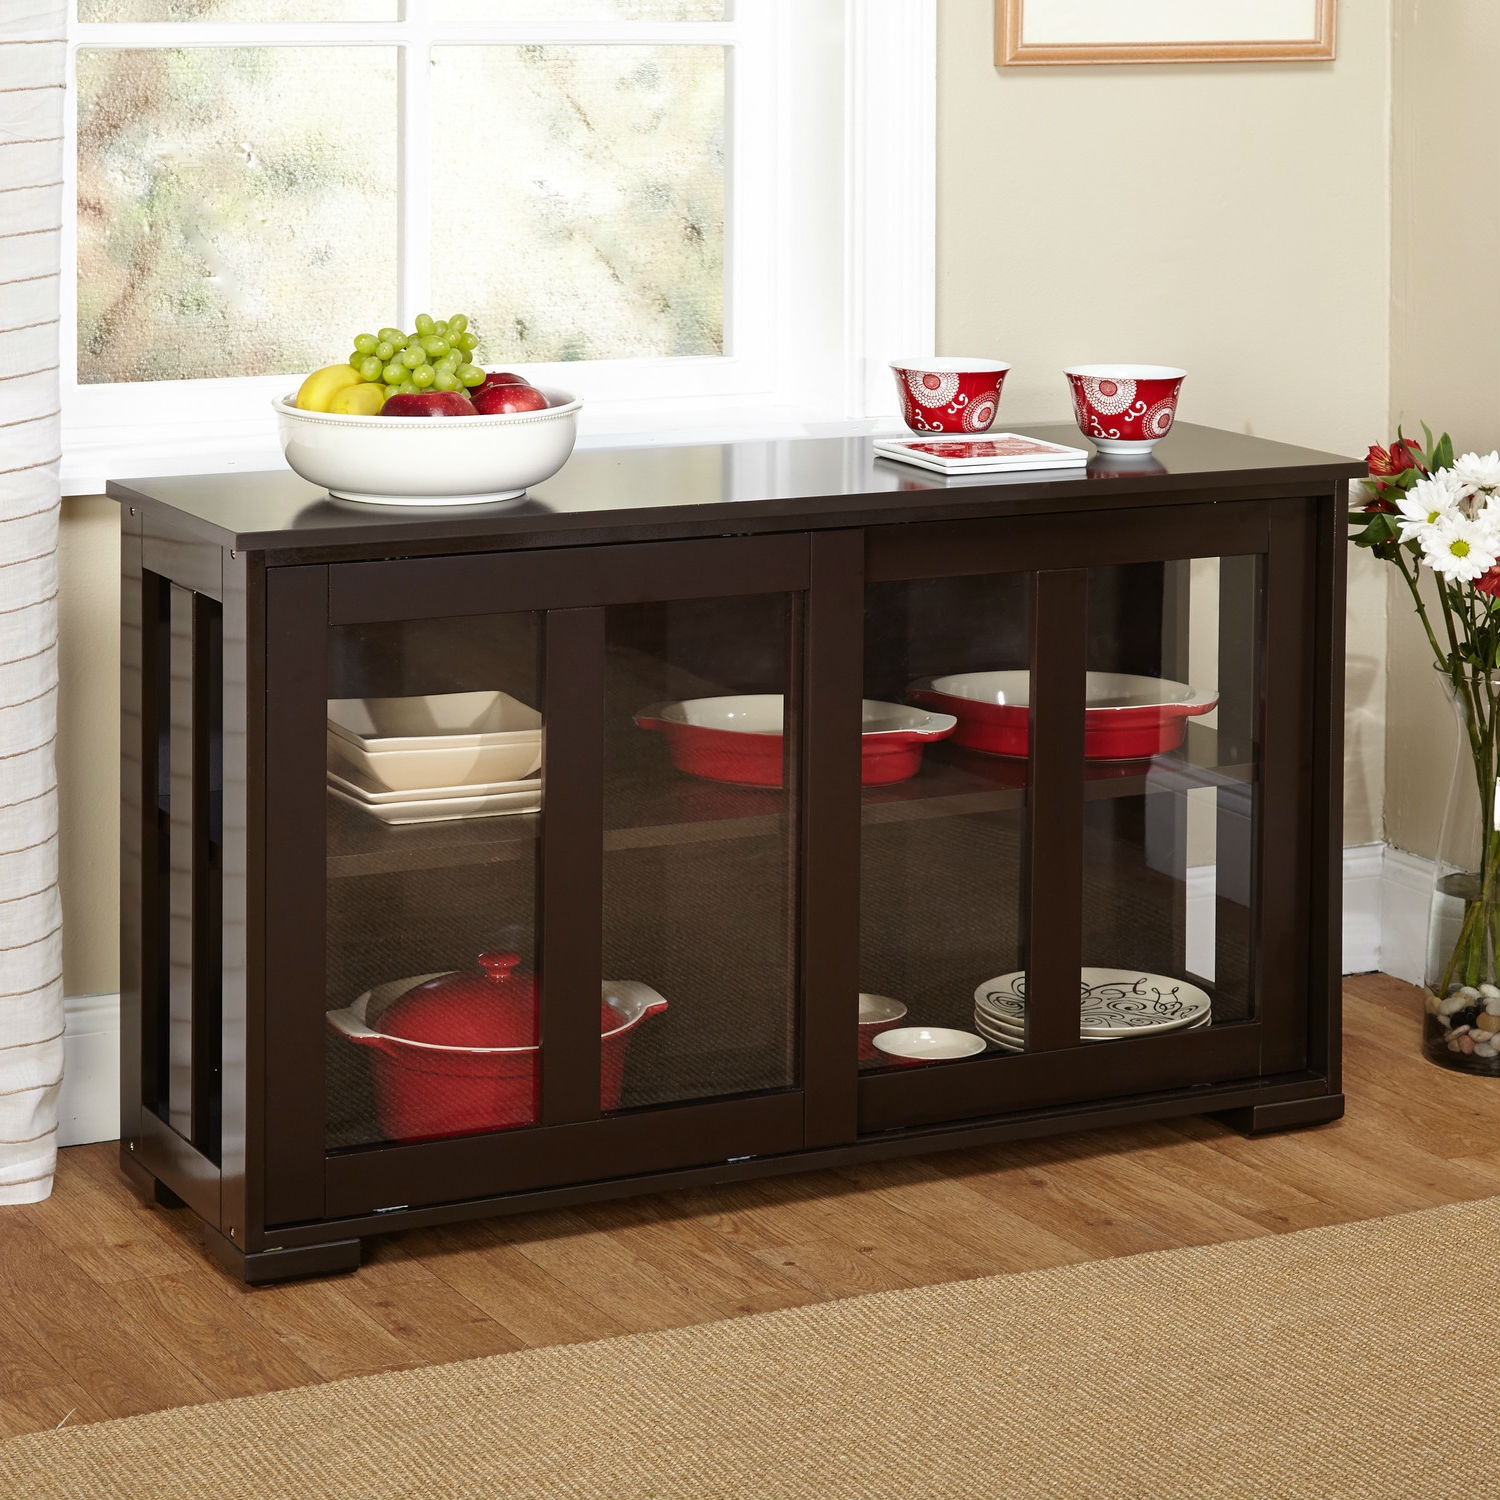 Espresso Sideboard Buffet Dining Kitchen Cabinet with 16 Glass ...